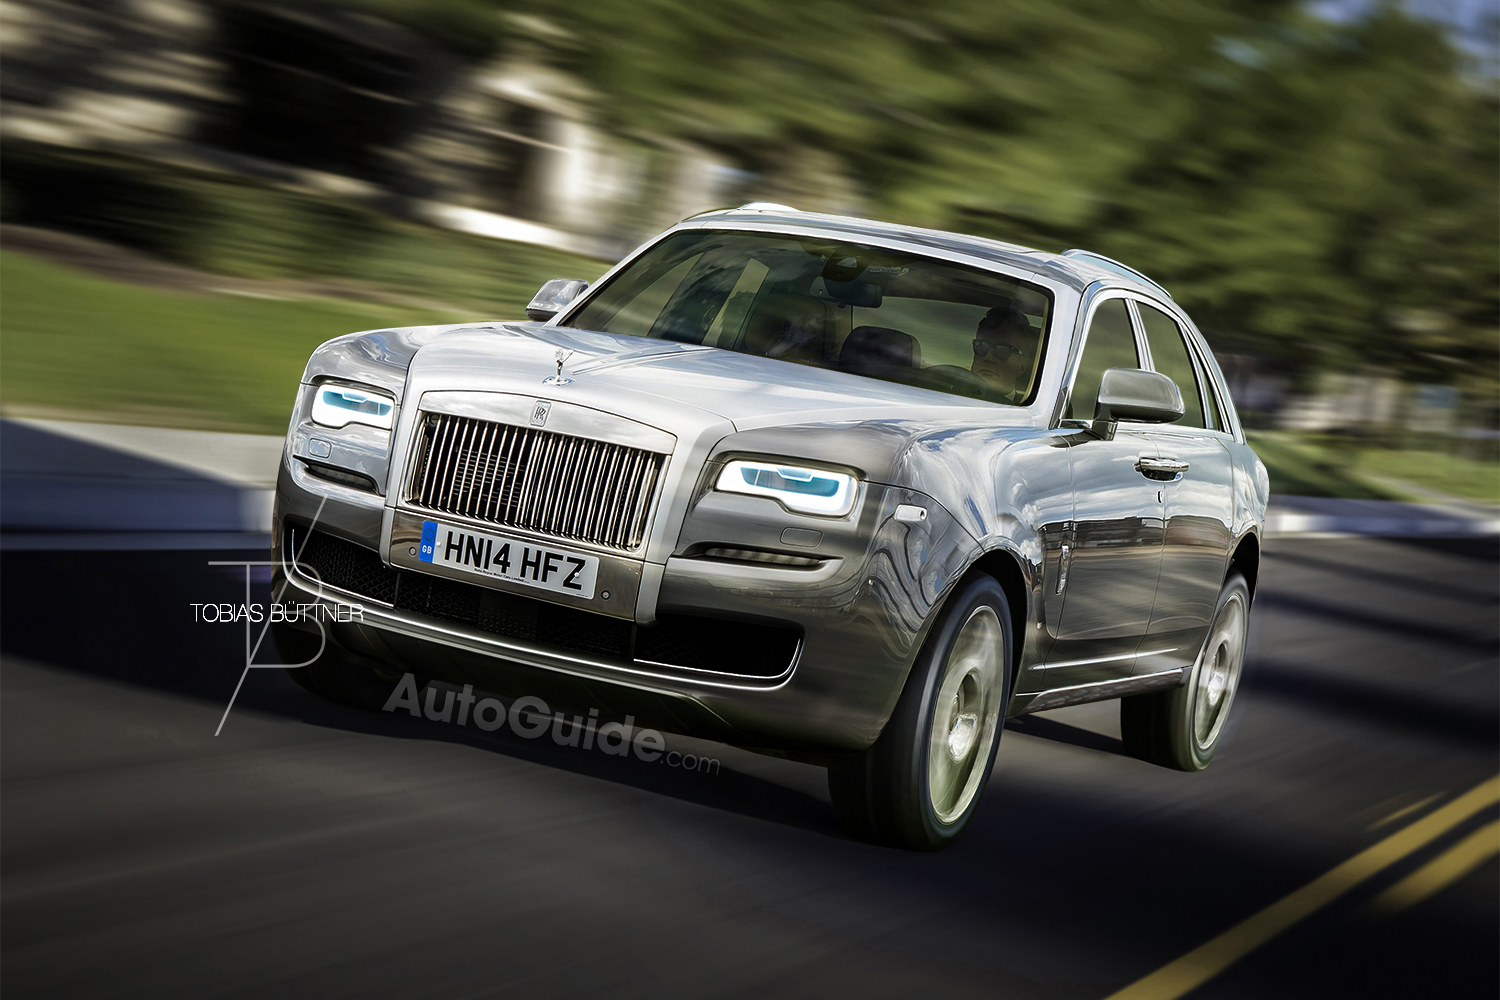 bentley bentayga 2016 youtube html with The New Rolls Royce Suv Could Look Like This on 2013 Aragon Paddock Girls Photo Galleryvideo 68136 furthermore Subaru Crosstrek Rally as well The New Rolls Royce Suv Could Look Like This furthermore Dacia Logan Mcv Ste ay Ab 12 200 Euro Jetzt Auch Im Offroad Look Id 74431 additionally parison Hyundai Kona Se 2018.